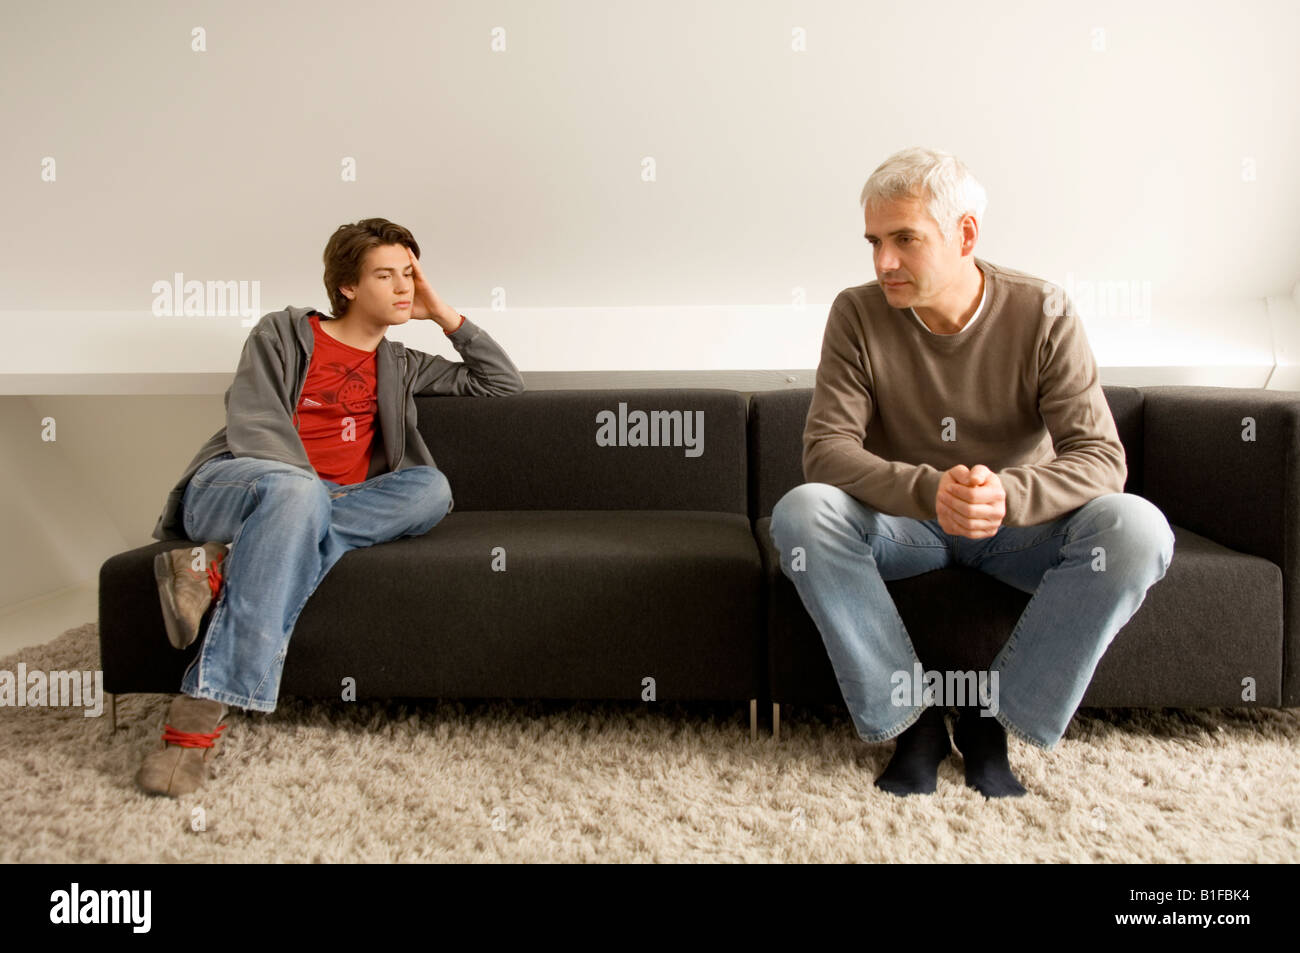 Mature man and his son sitting on a couch - Stock Image